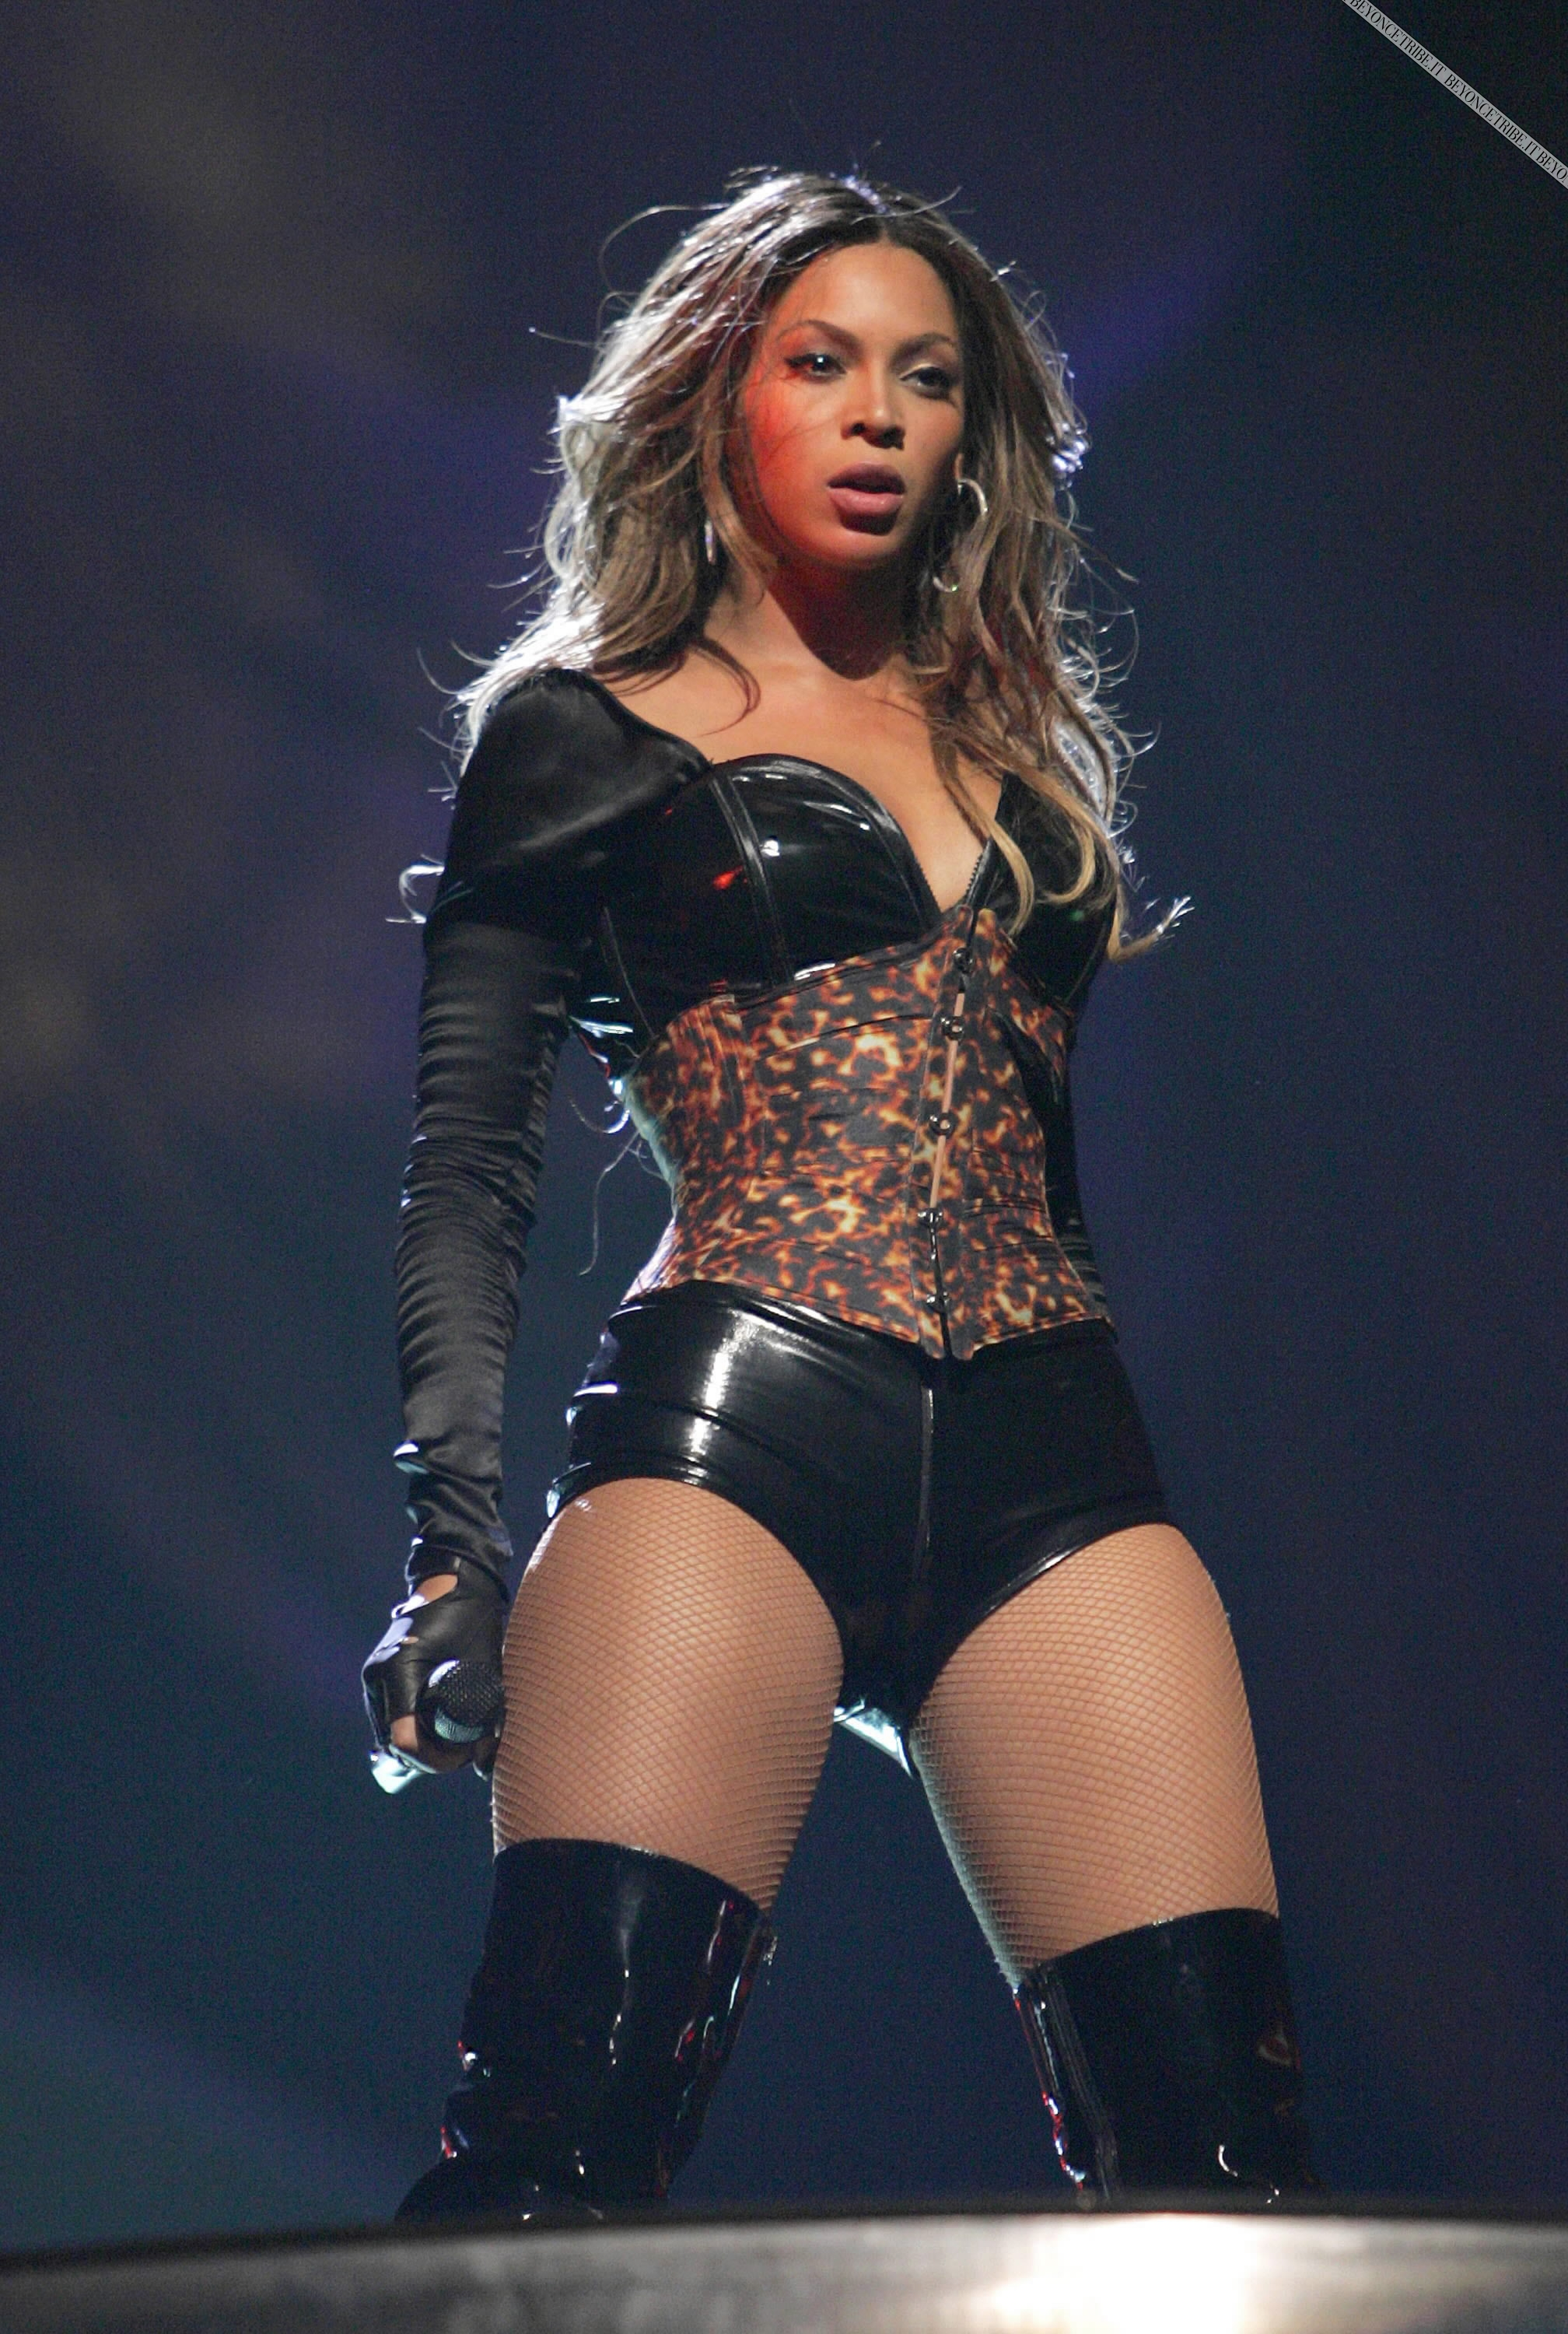 vma 2006